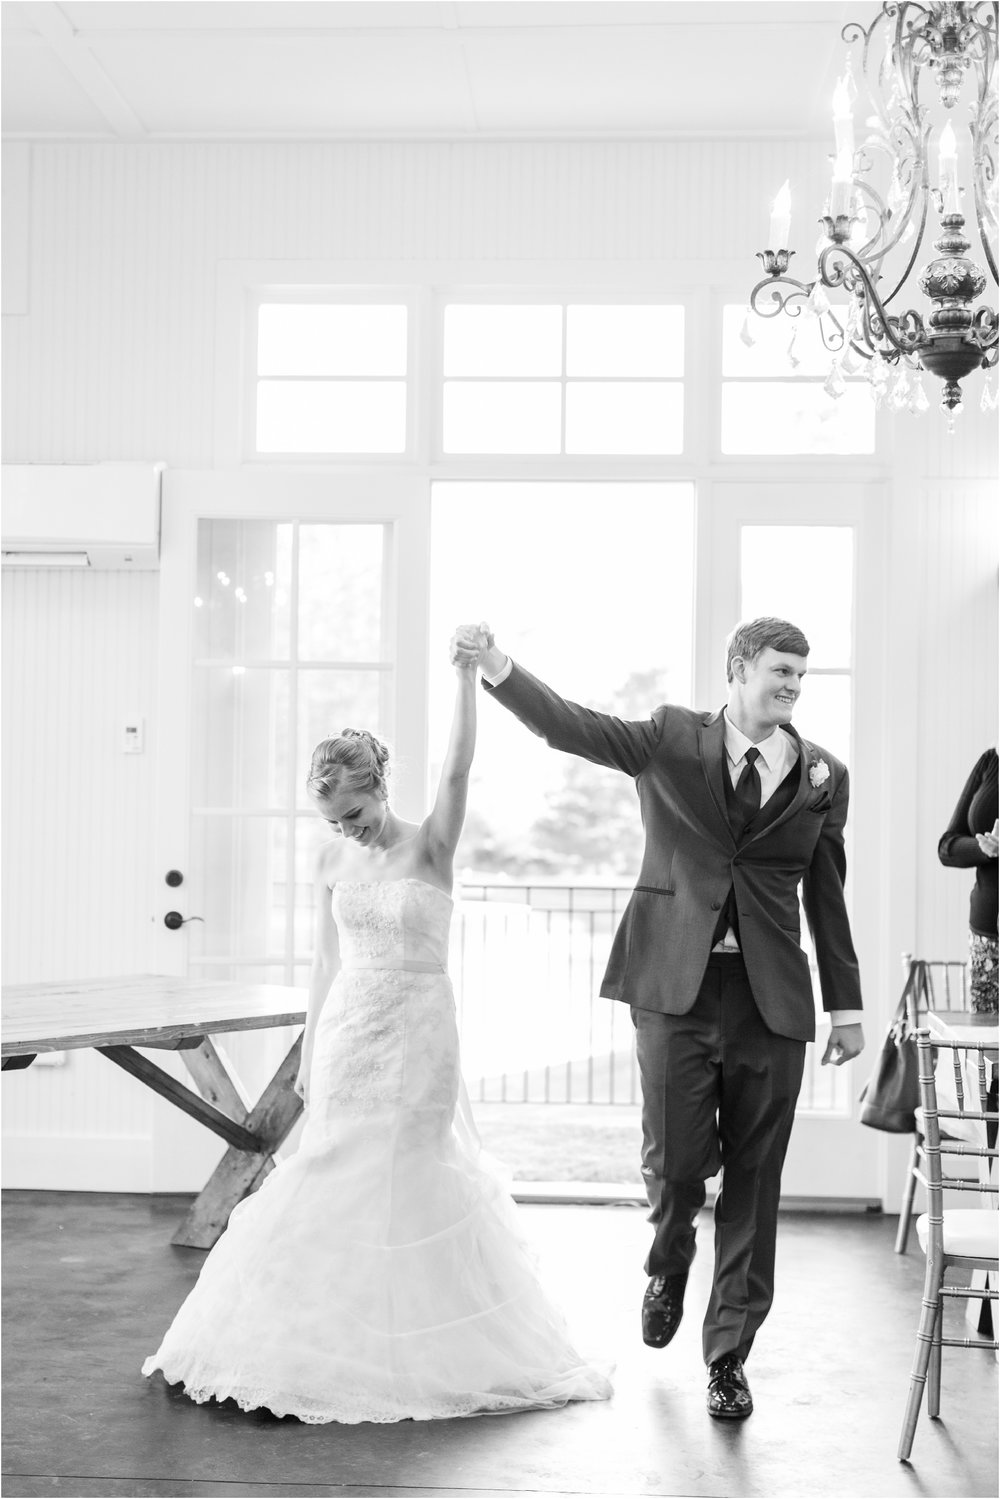 Savannah Eve Photography- Perkins Wedding- Blog-31.jpg